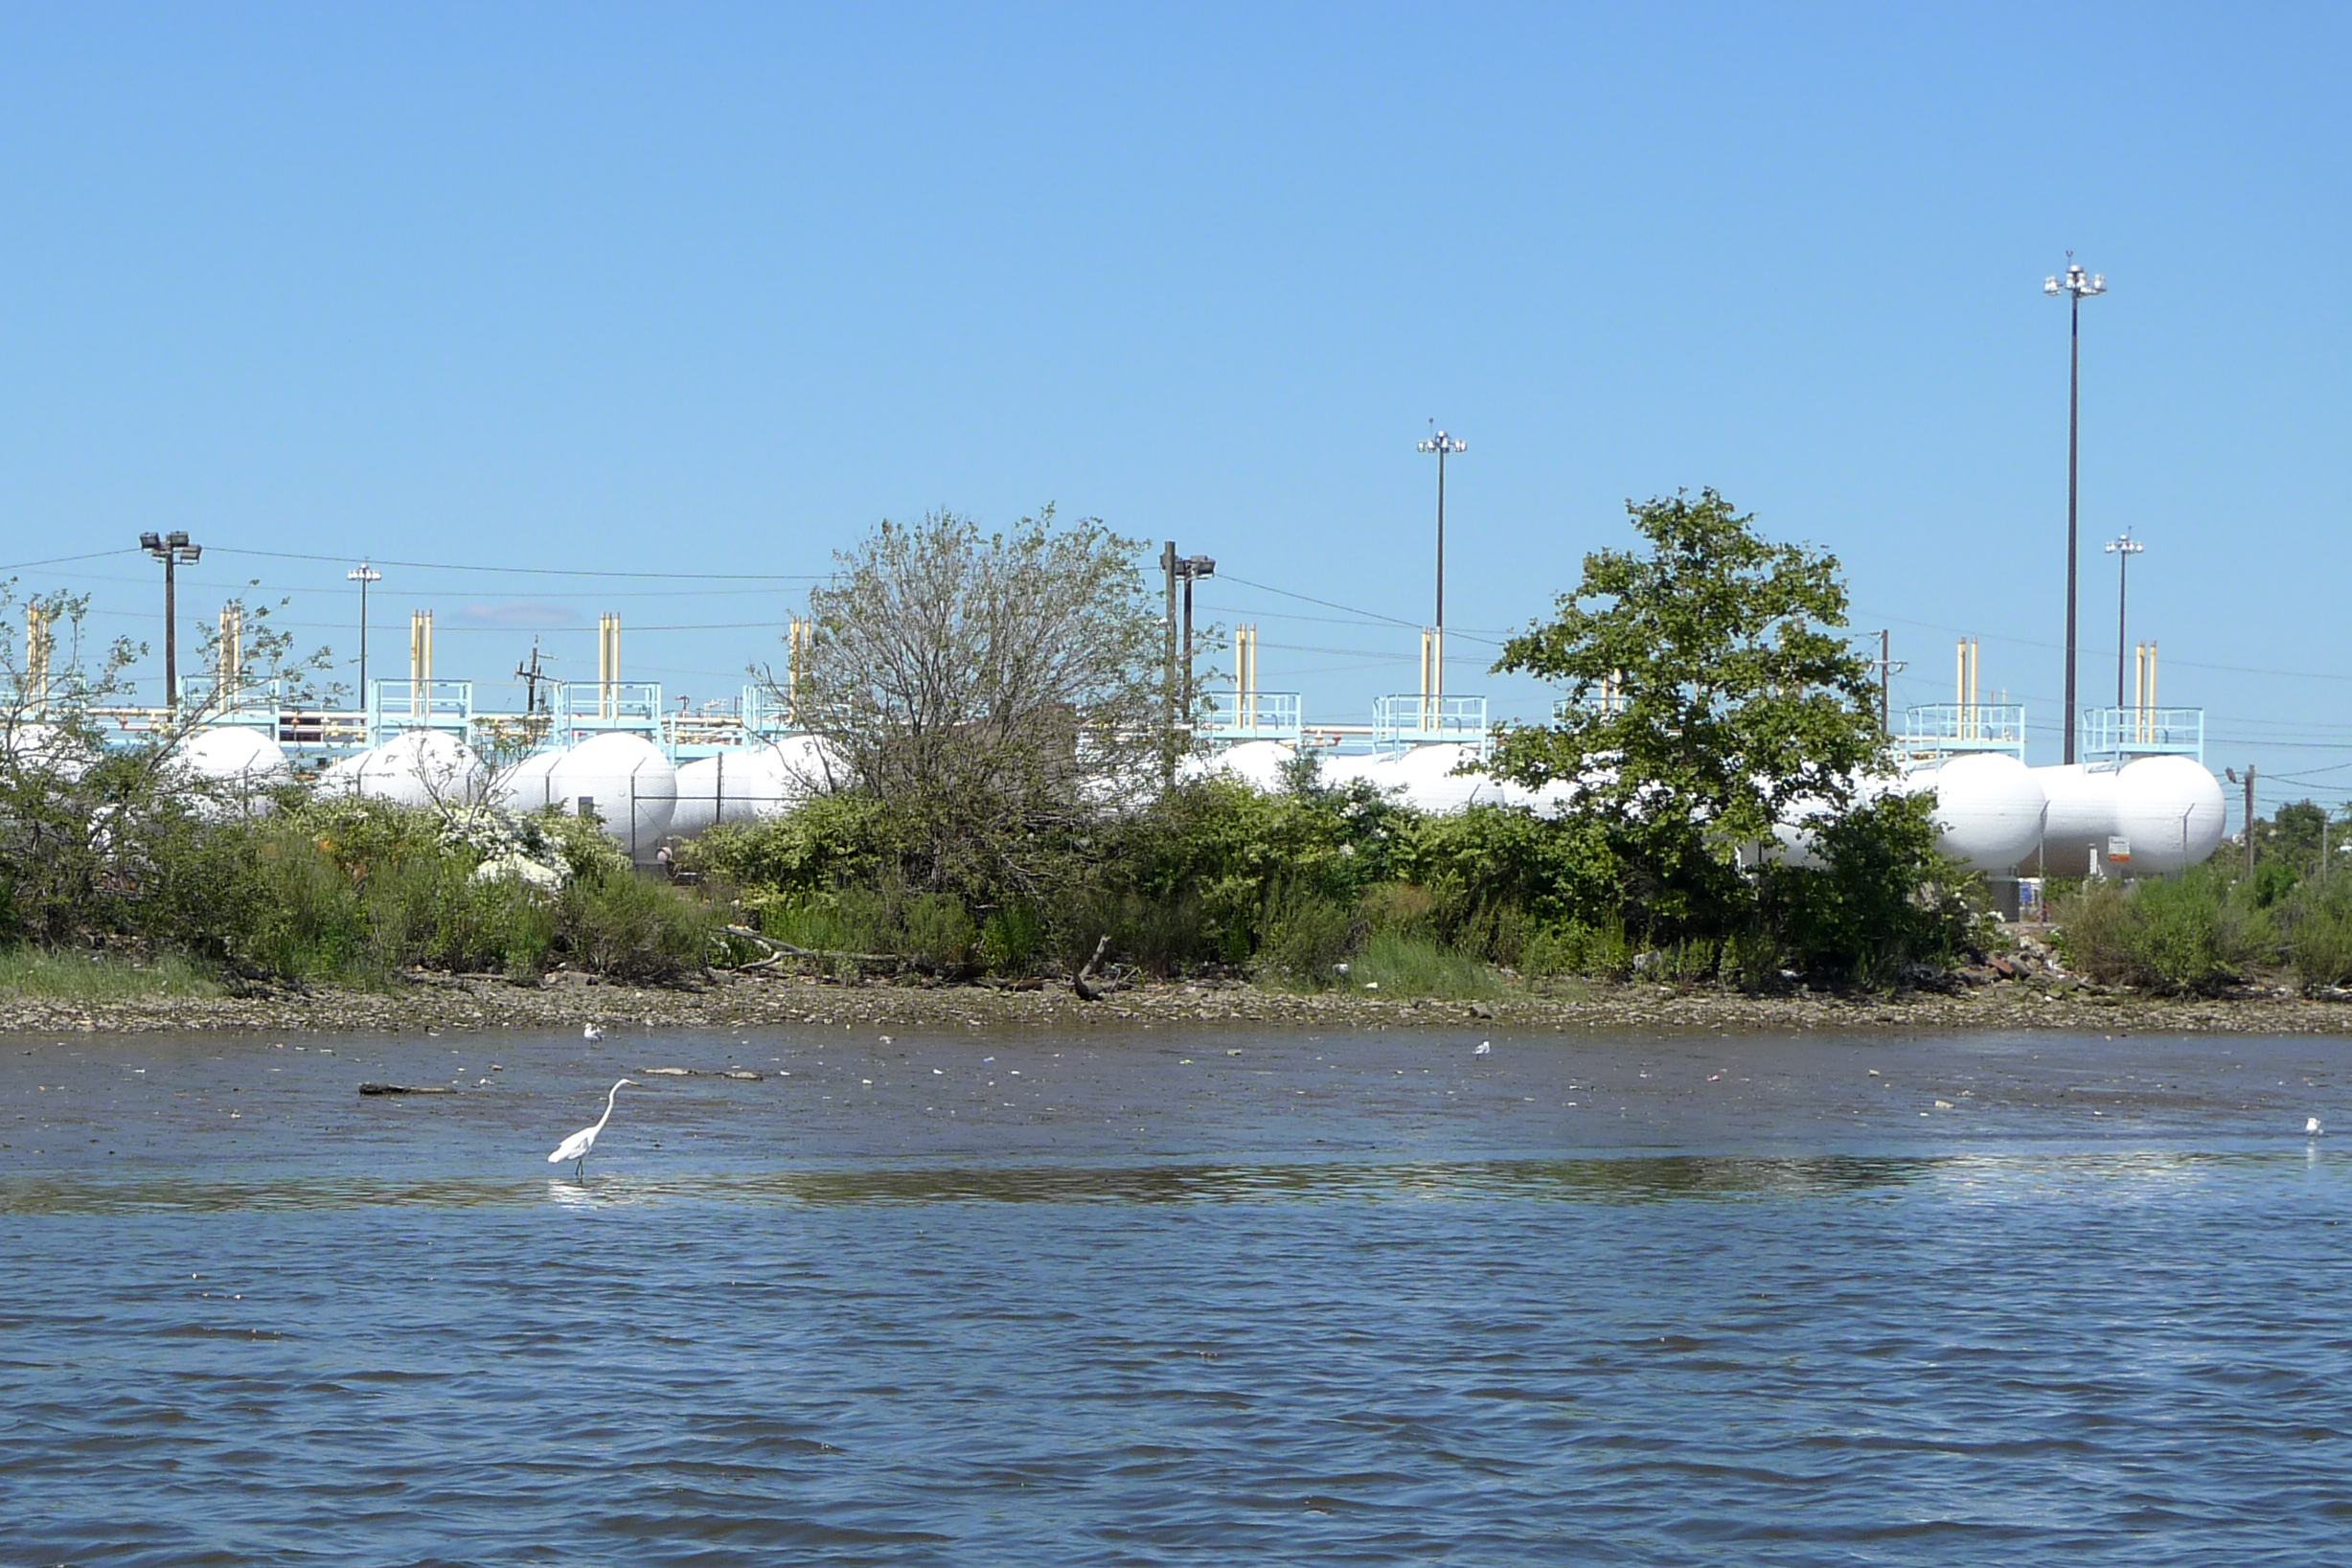 A white crane wades in the Passaic River in New Jersey. Chemical tanks line the shore behind it.